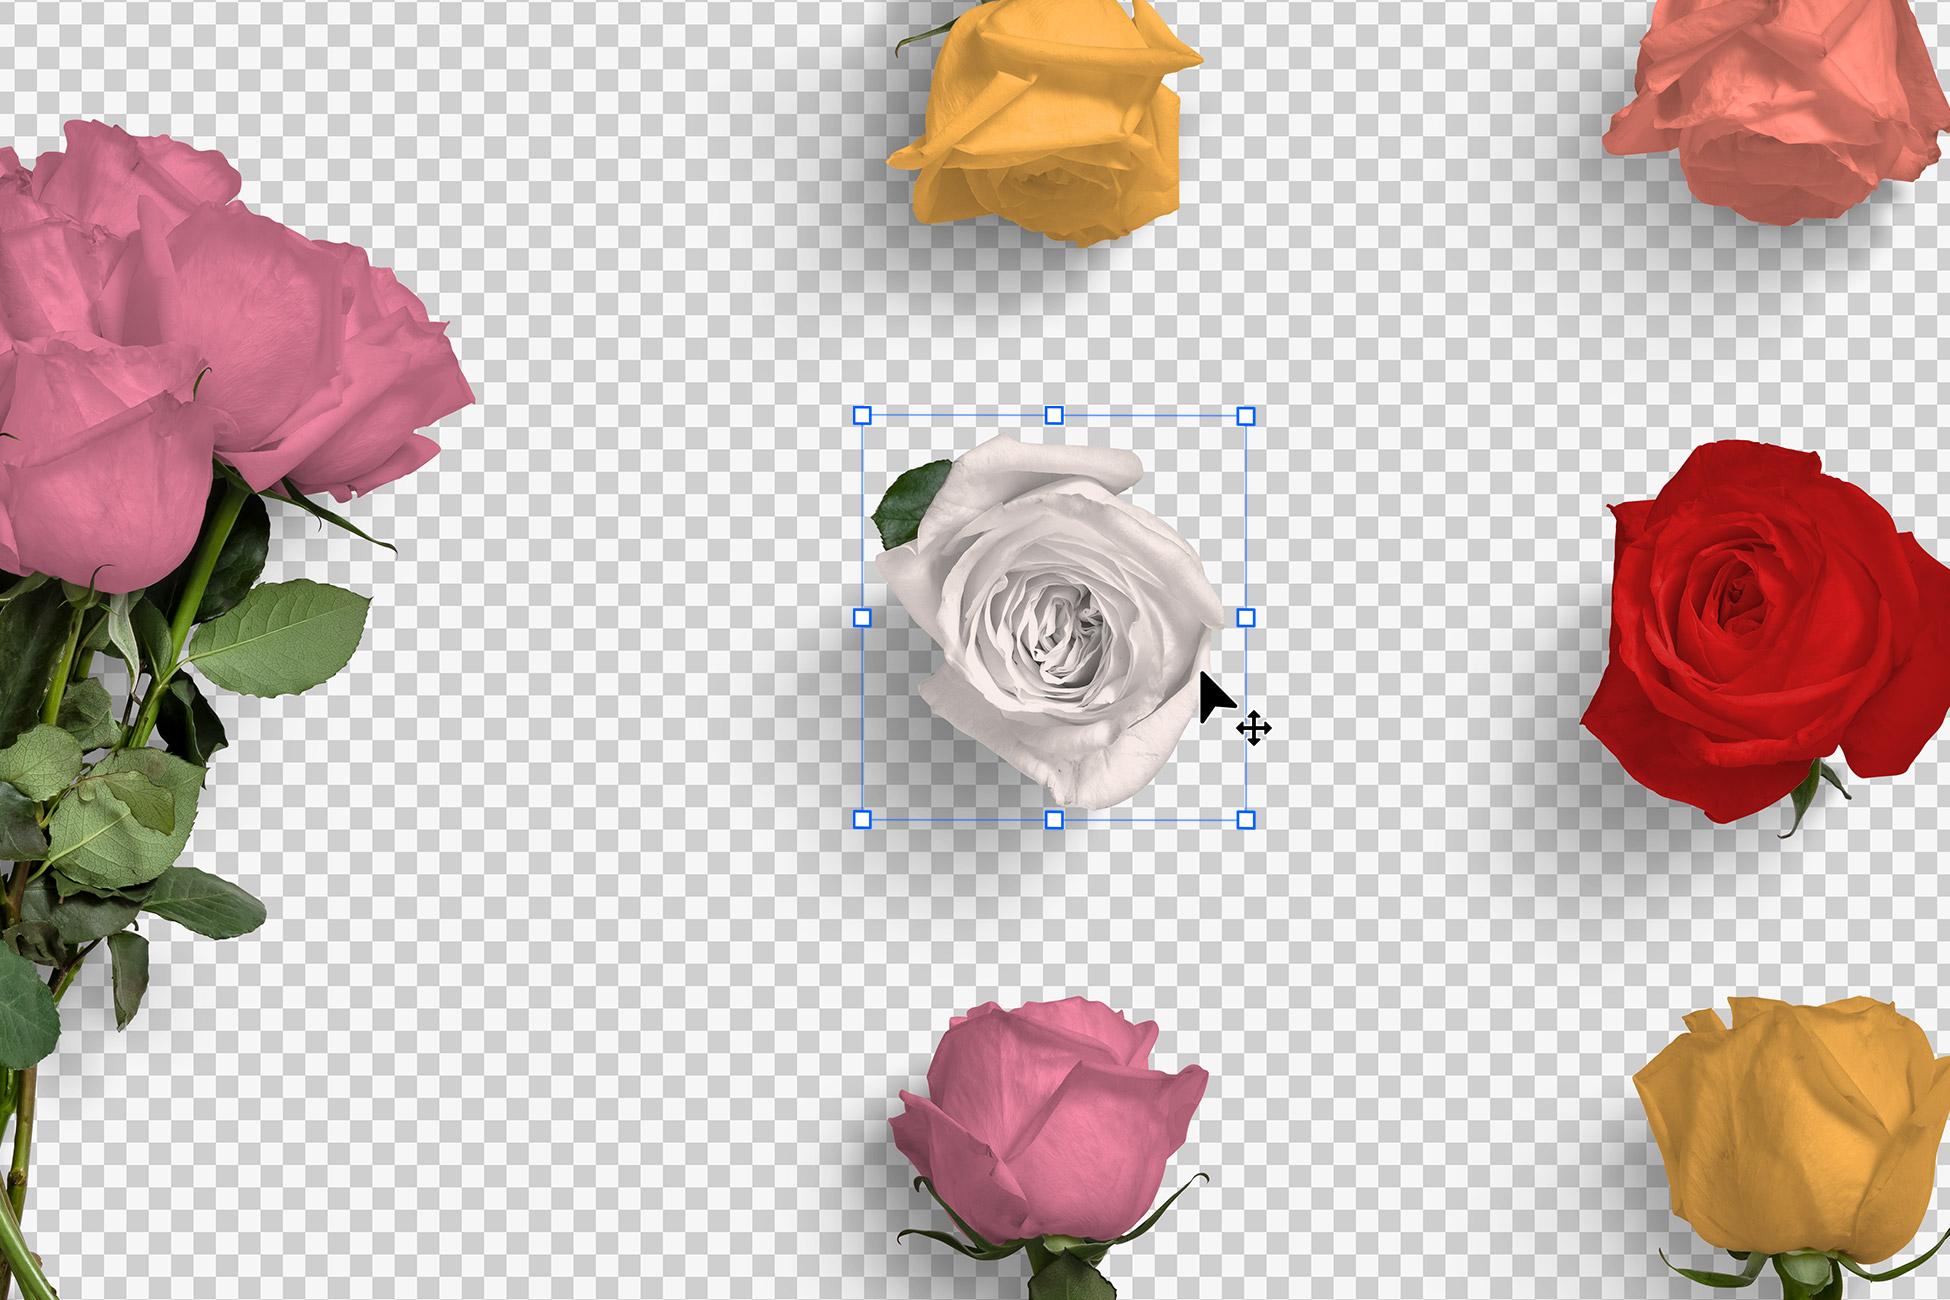 Roses Flower Isolated Objects